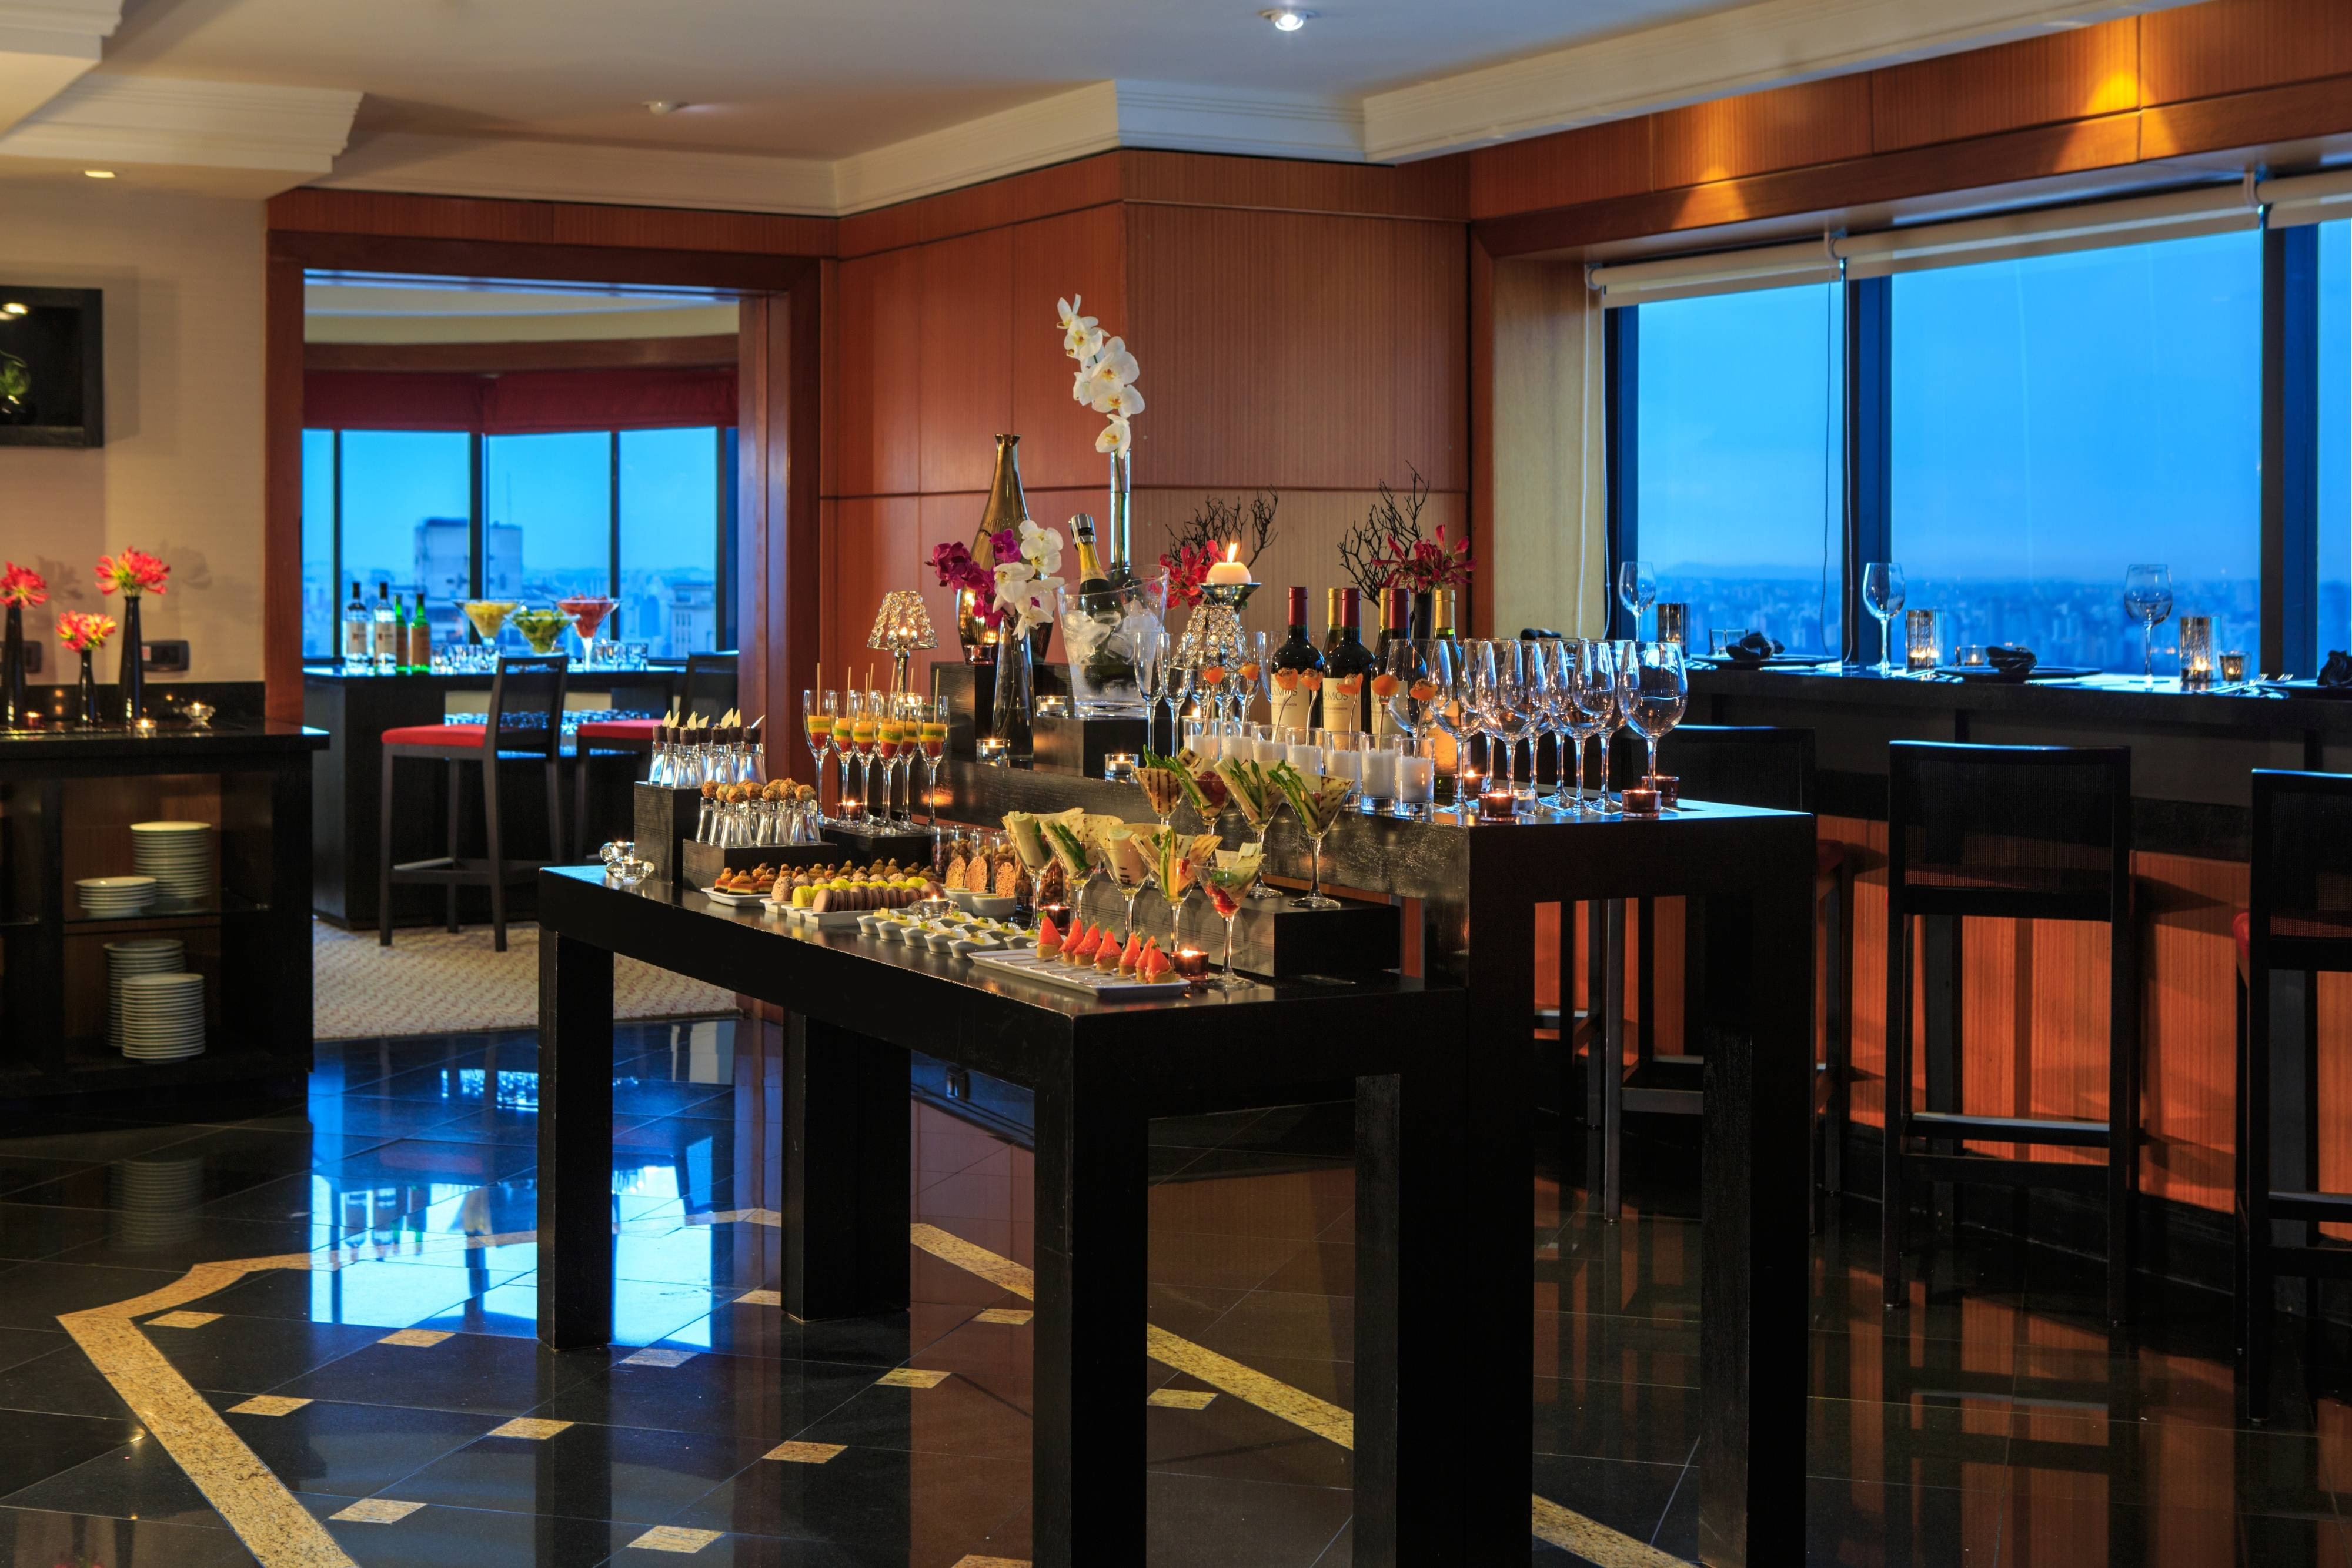 Bar del club lounge ejecutivo